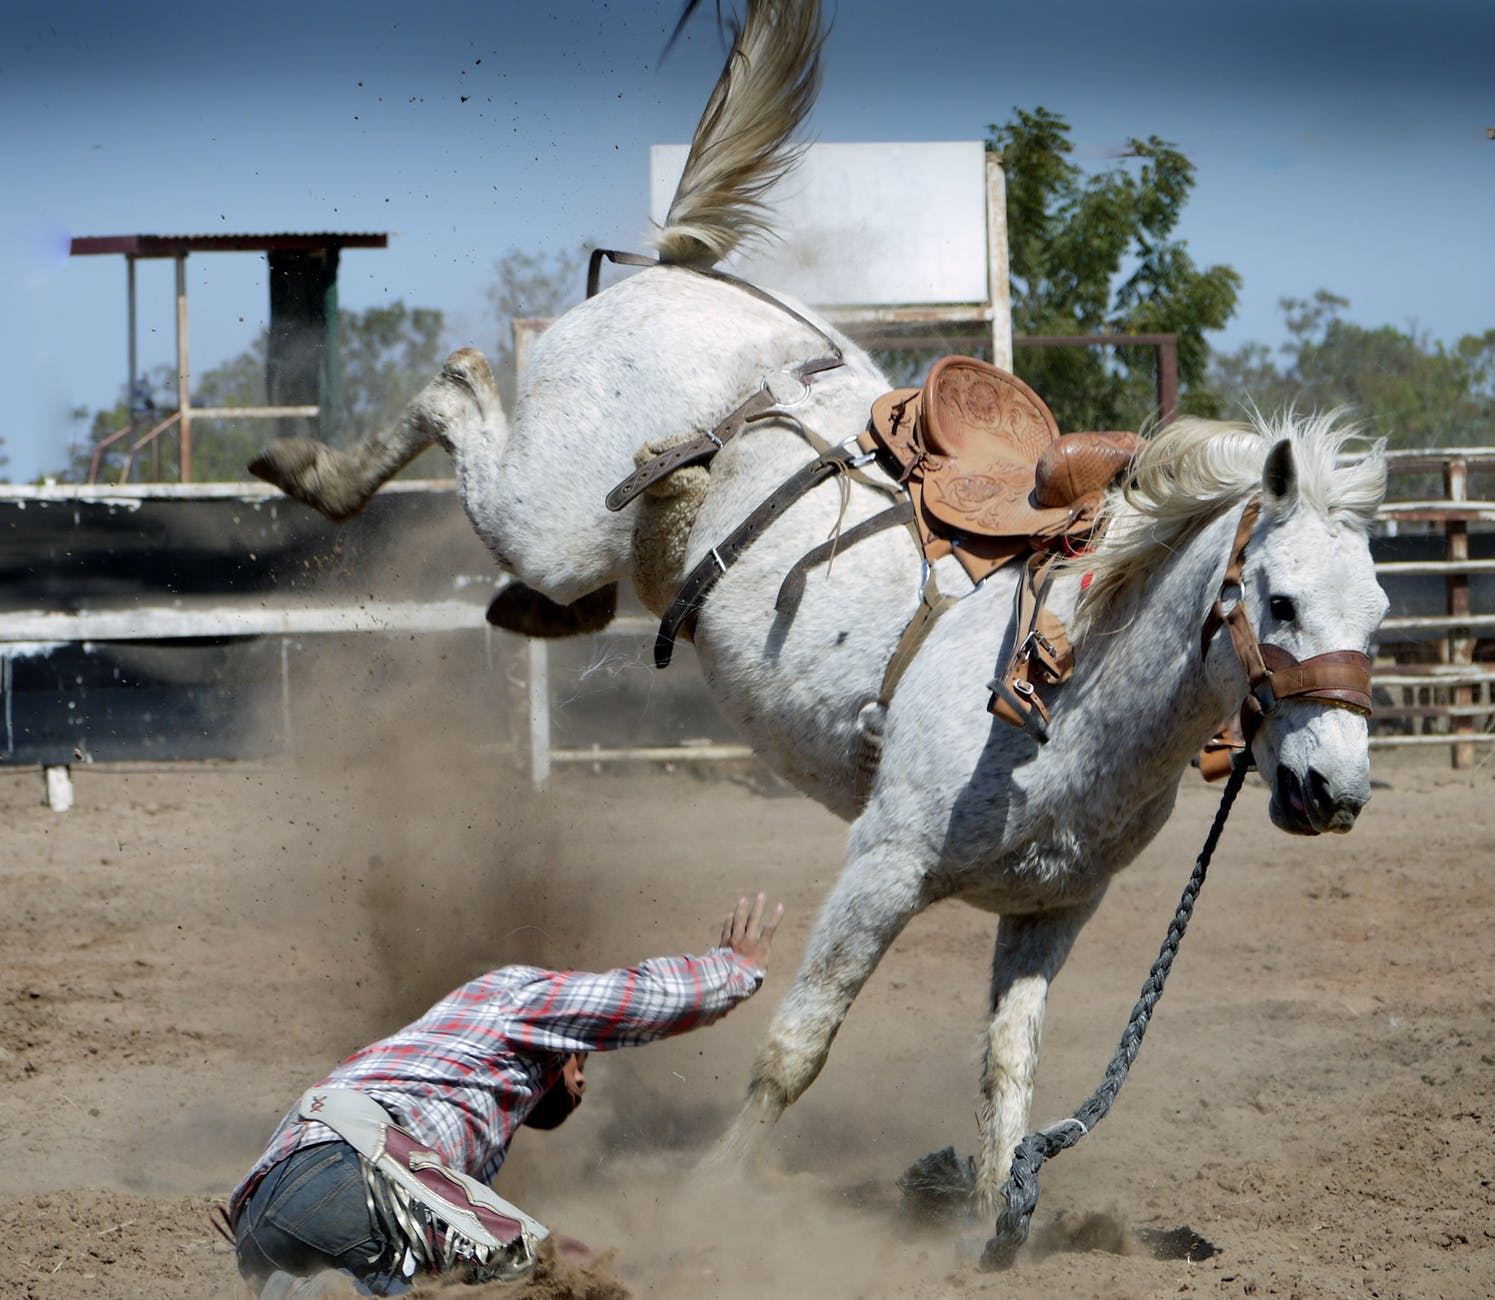 action animal bronco bucking